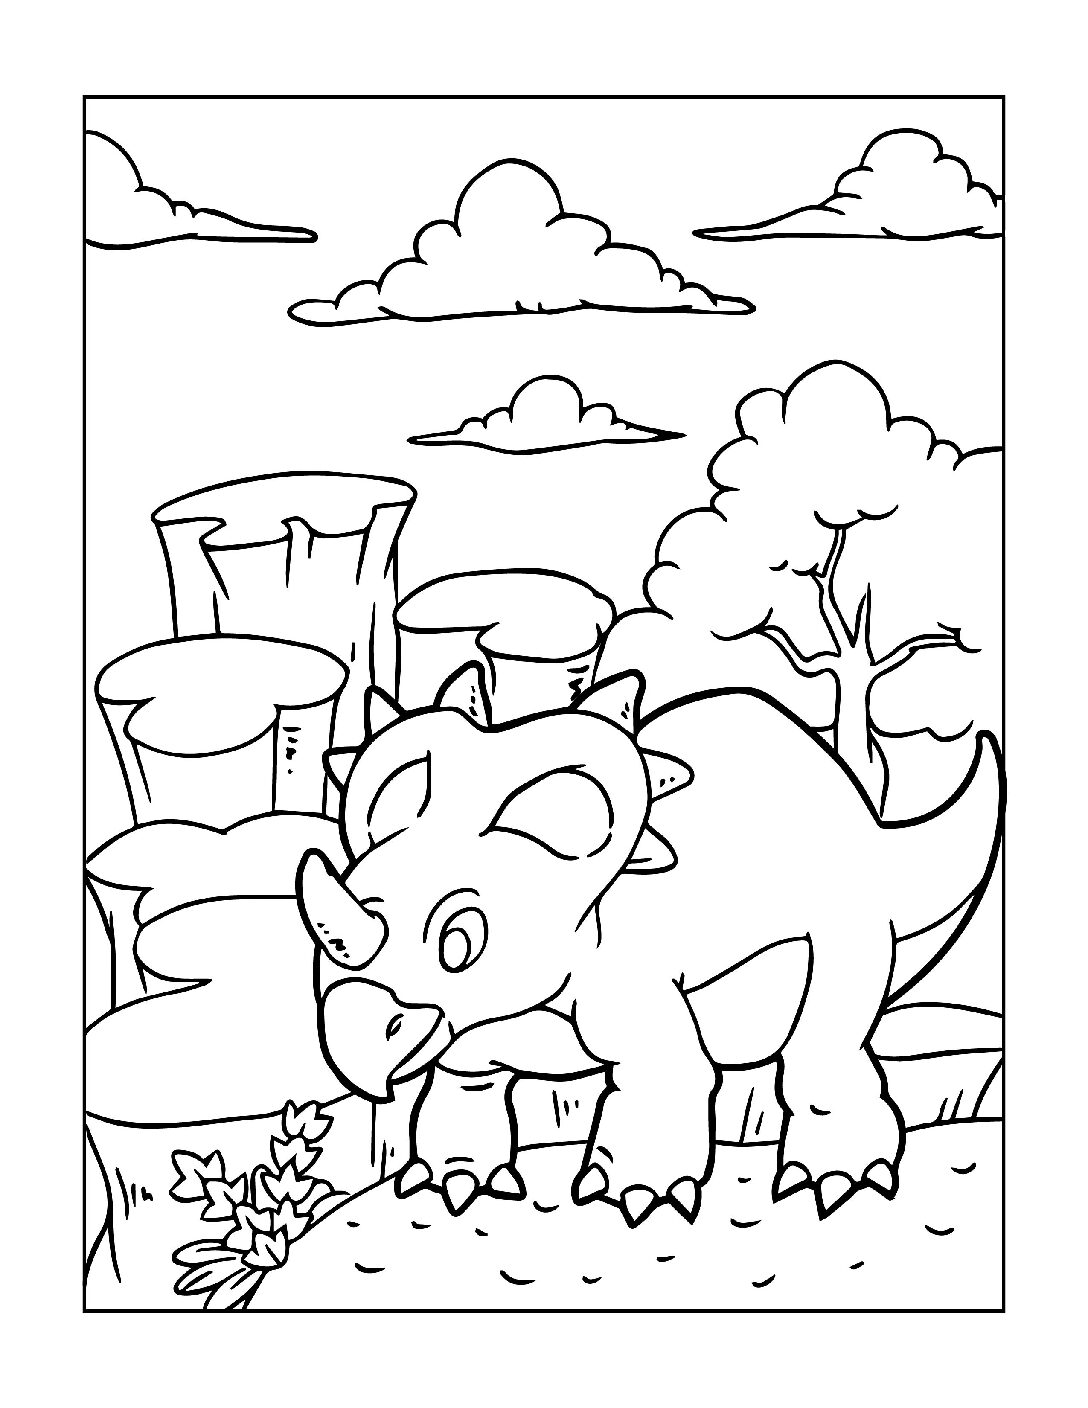 Coloring-Pages-Dinosaur-13-pdf Free Printable Dinasour Colouring Pages